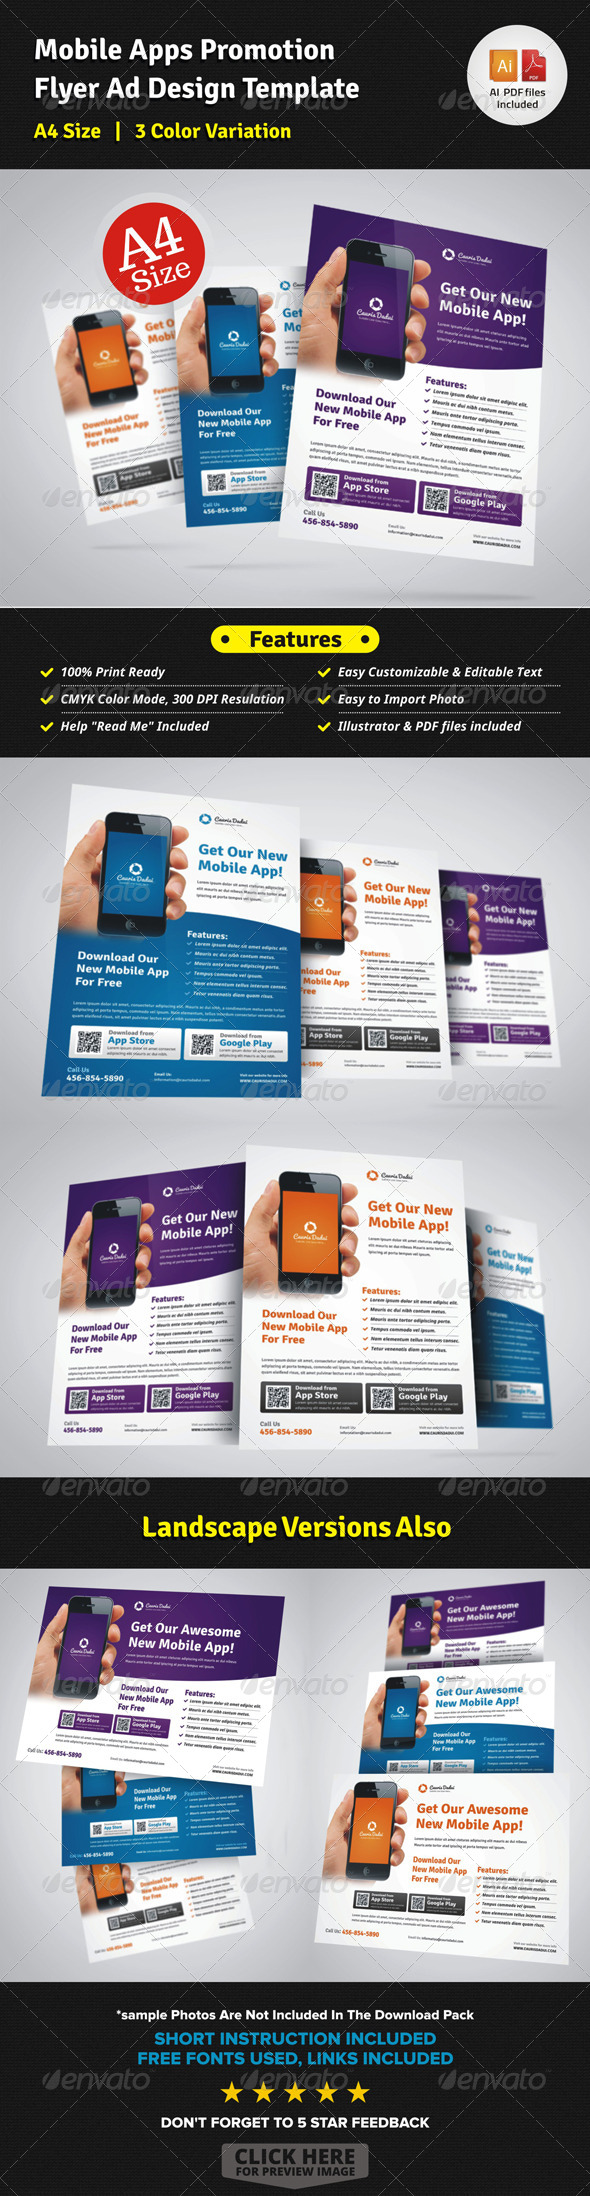 Mobile Apps Promotion Flyer Ad Design - Corporate Flyers